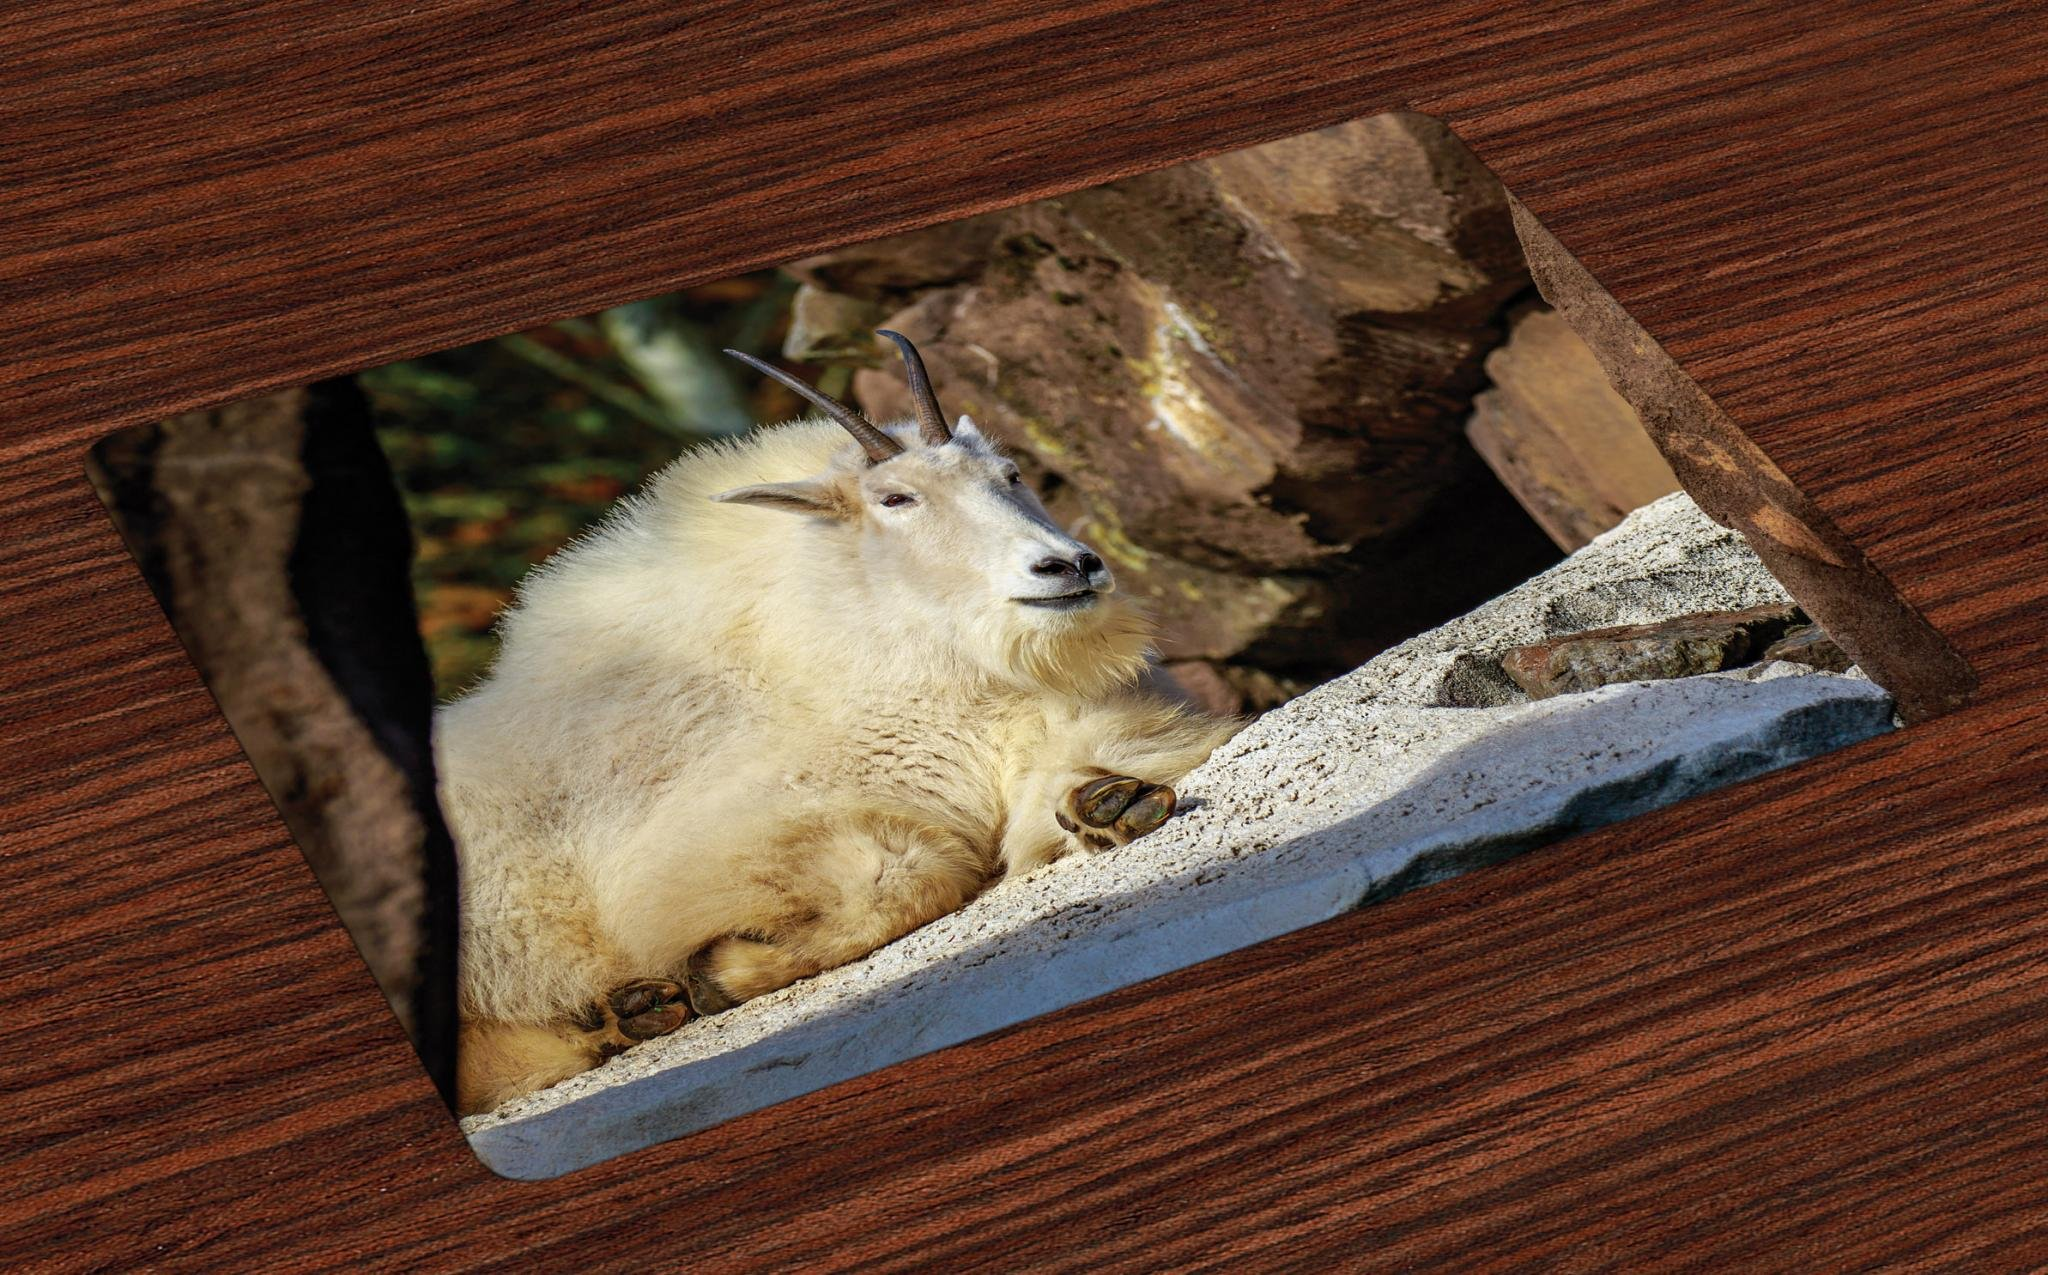 Lunarable Goat Place Mats Set of 4, White Mountain Goat Sunbathing on a Rocky Slope Idyllic North America Scene, Washable Fabric Placemats for Dining Room Kitchen Table Decor, Brown Cream and Grey